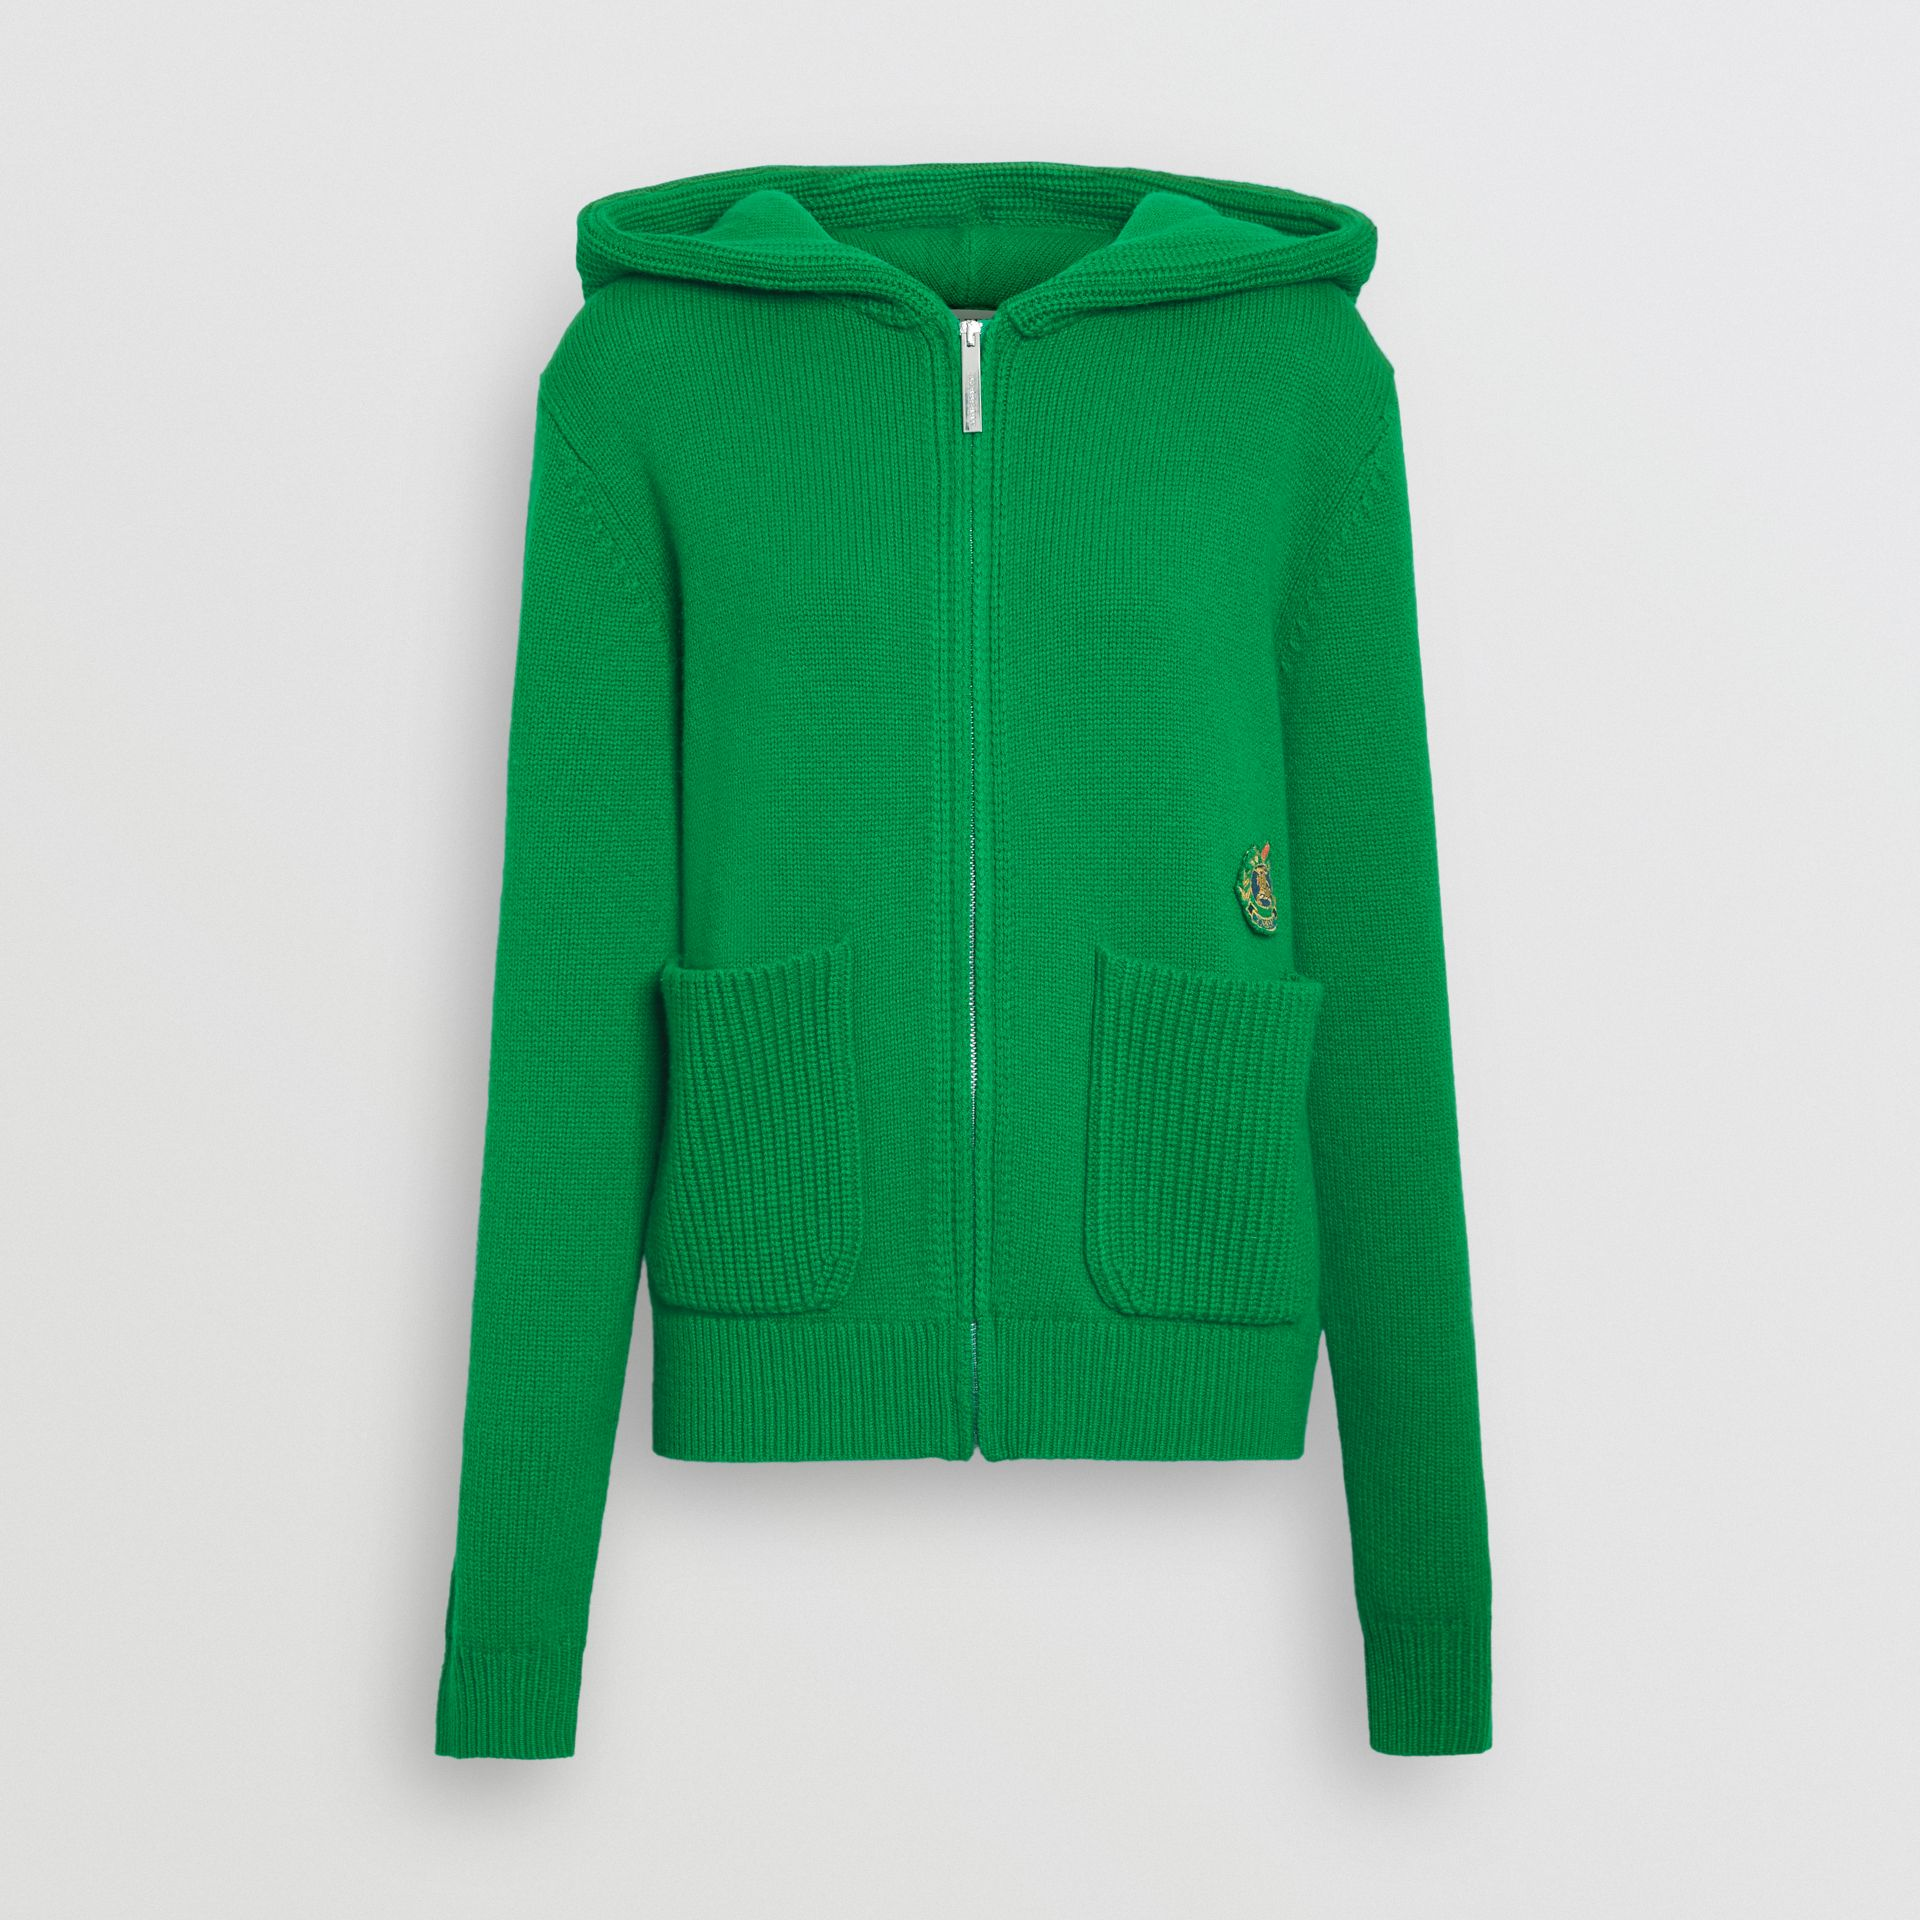 Embroidered Archive Logo Cashmere Hooded Top in Vibrant Green - Women | Burberry - gallery image 3